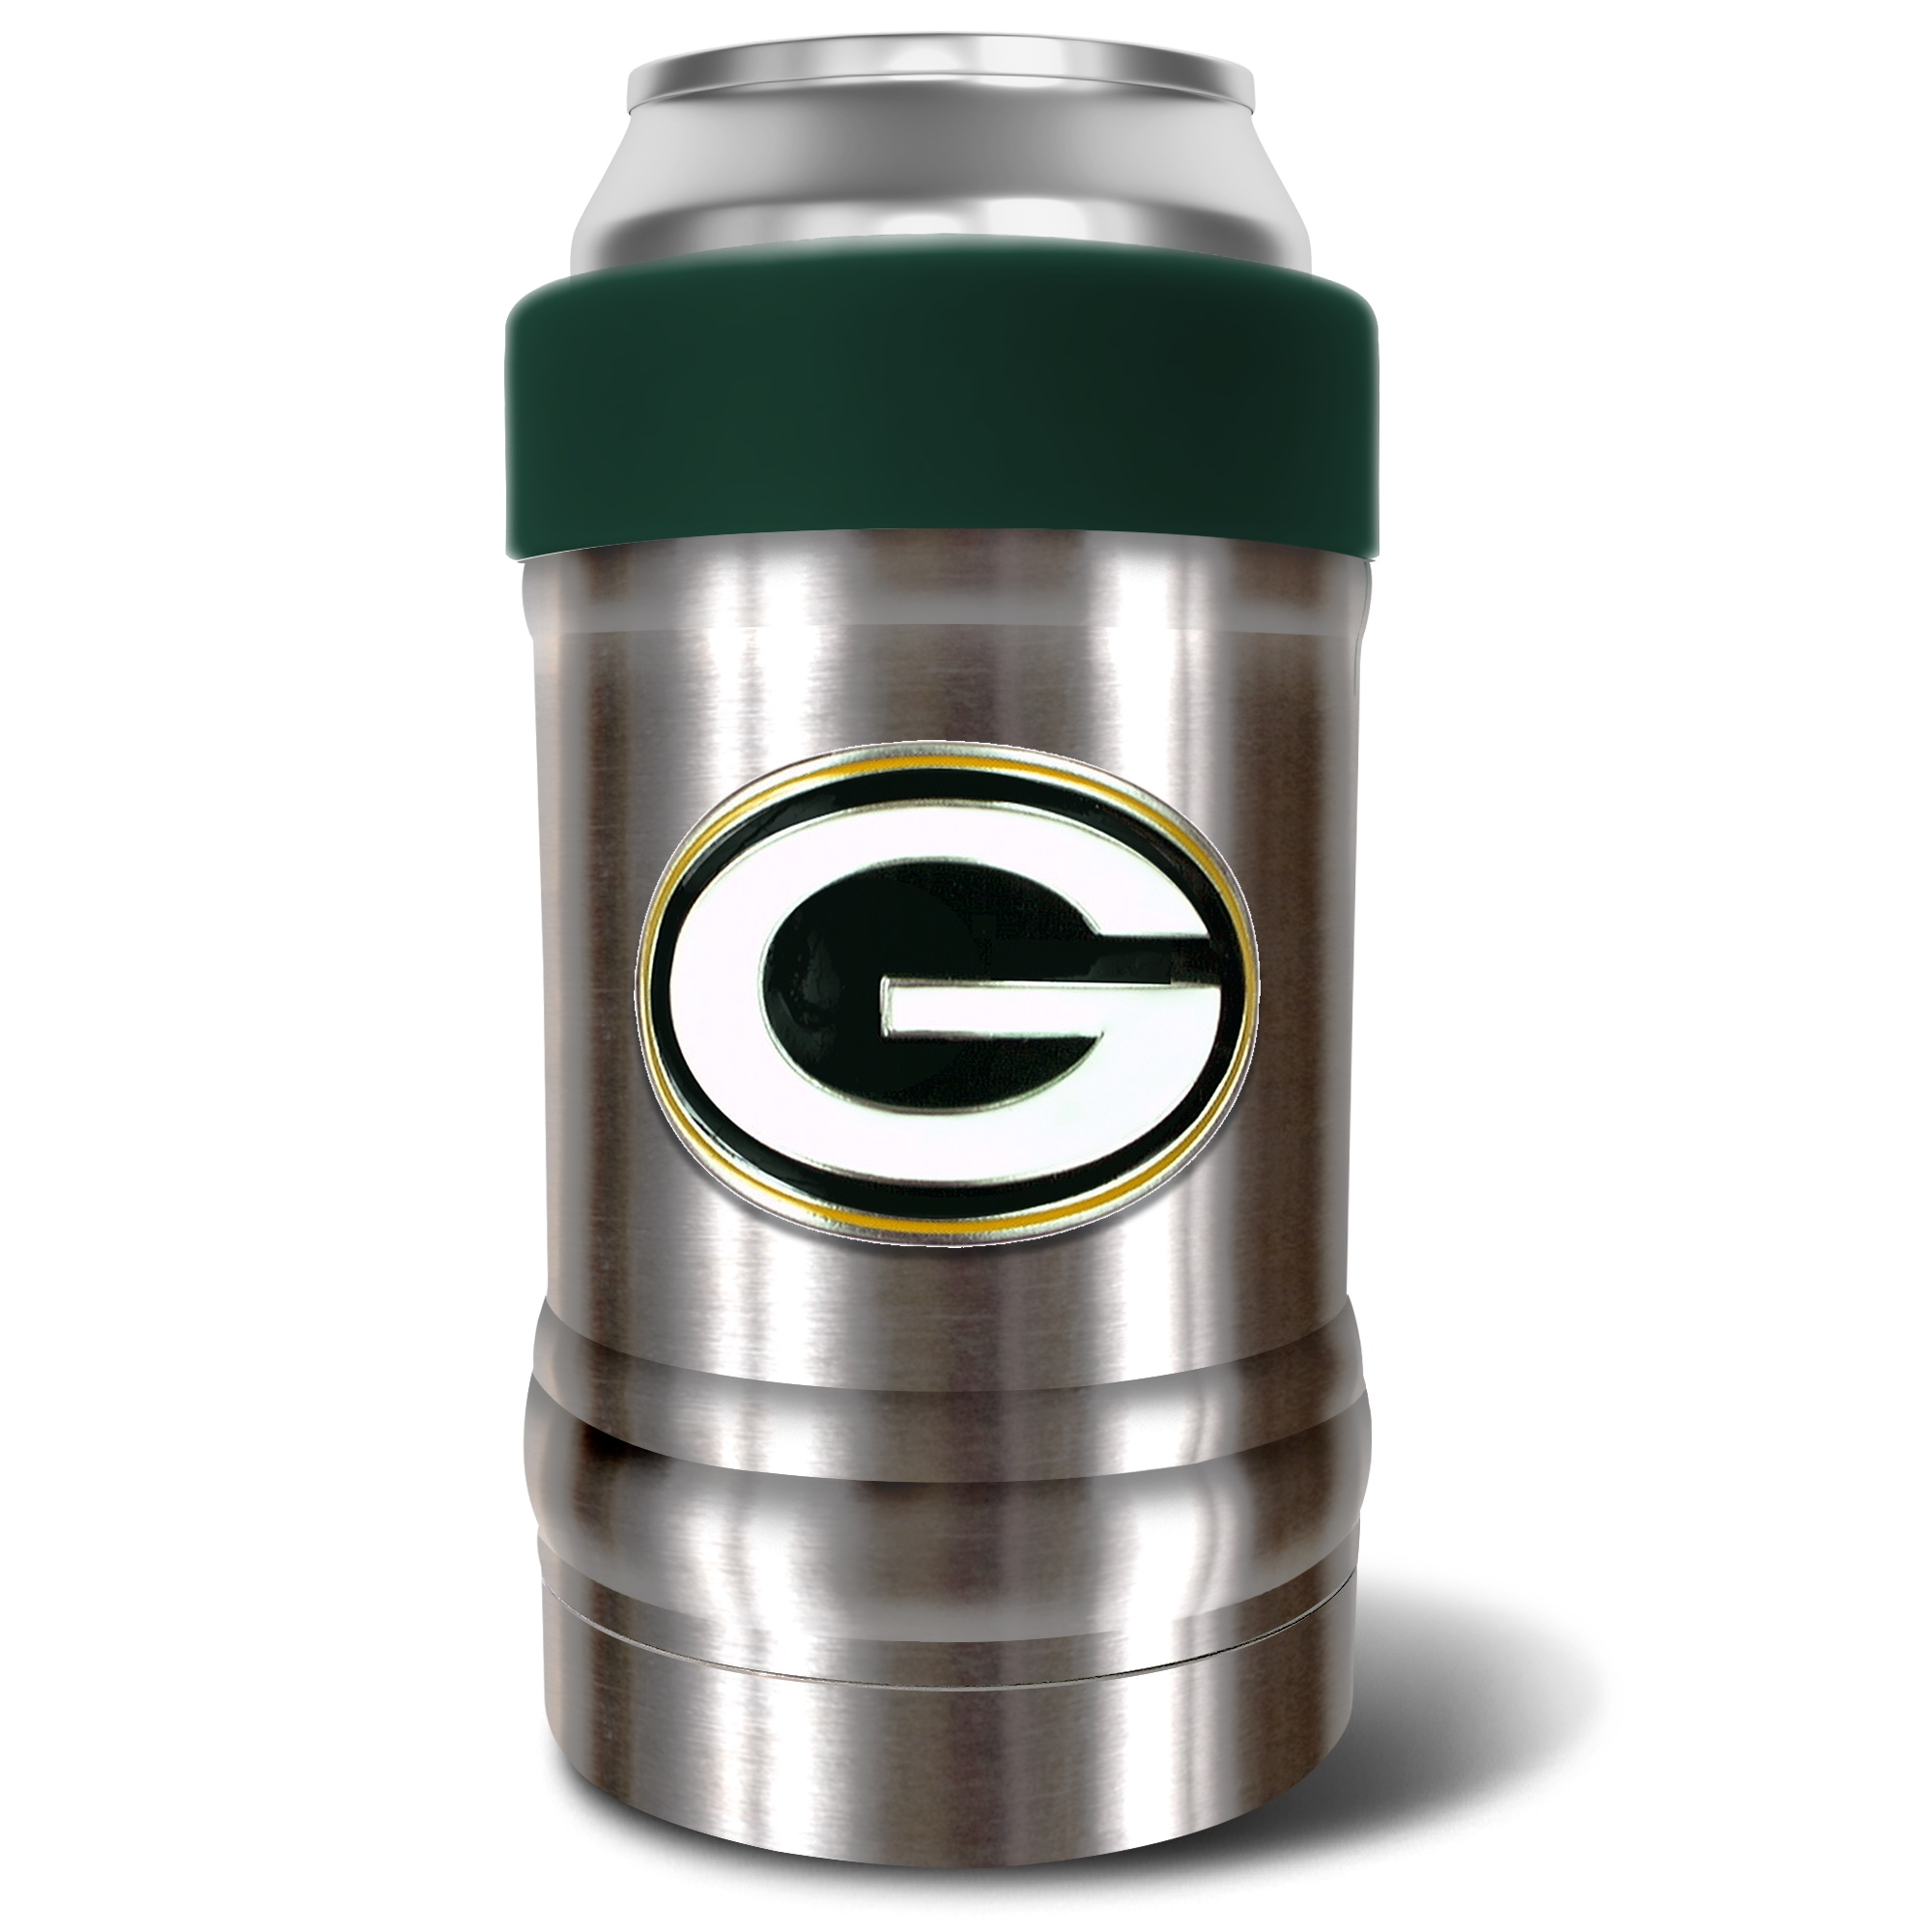 Green Bay Packers The Locker 12oz. Can Holder - Silver/Green - No Size